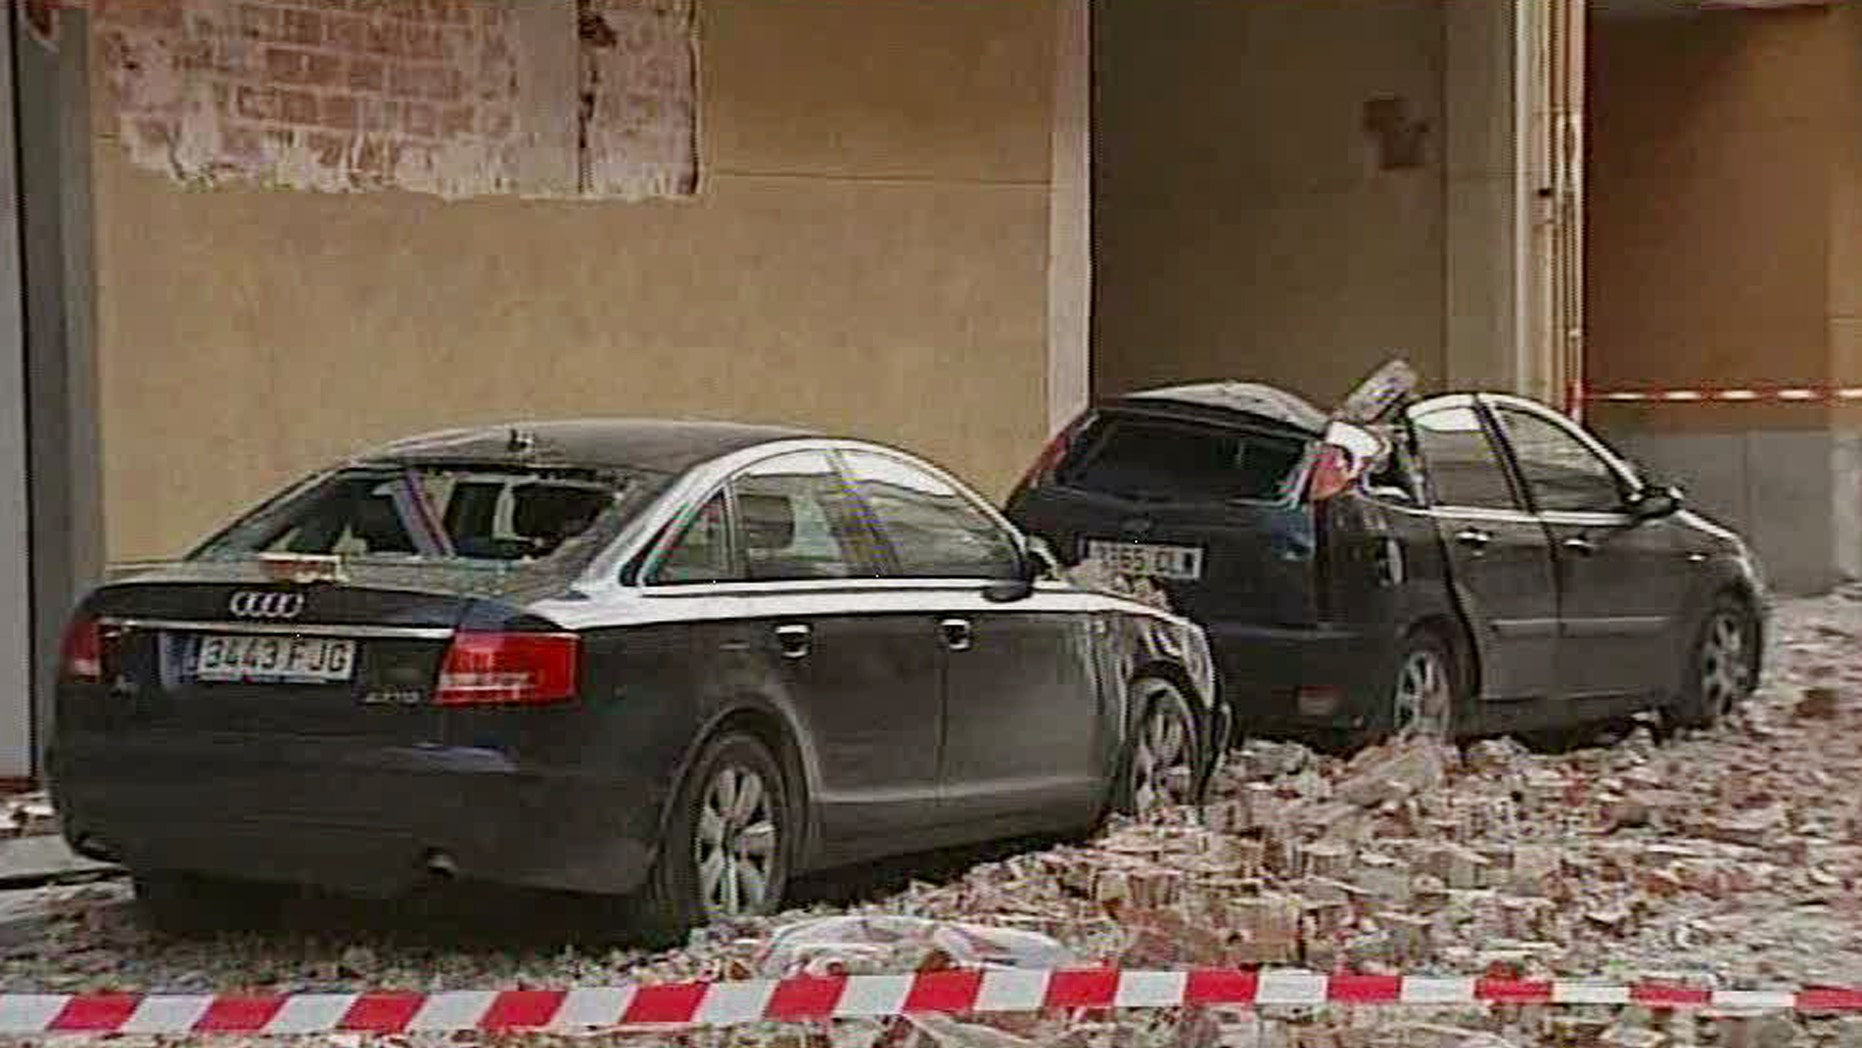 May 11: Damaged vehicles and debris are seen on the street after an earthquake in Lorca Spain in  this image taken from TV.  Two earthquakes struck southeast Spain in quick succession Wednesday, killing several people, and injuring dozens and causing major damage to buildings, officials said. The epicenter of the quakes with magnitudes of 4.4 and 5.2  was close to the town of Lorca, and the second came about two hours after the first. (AP)